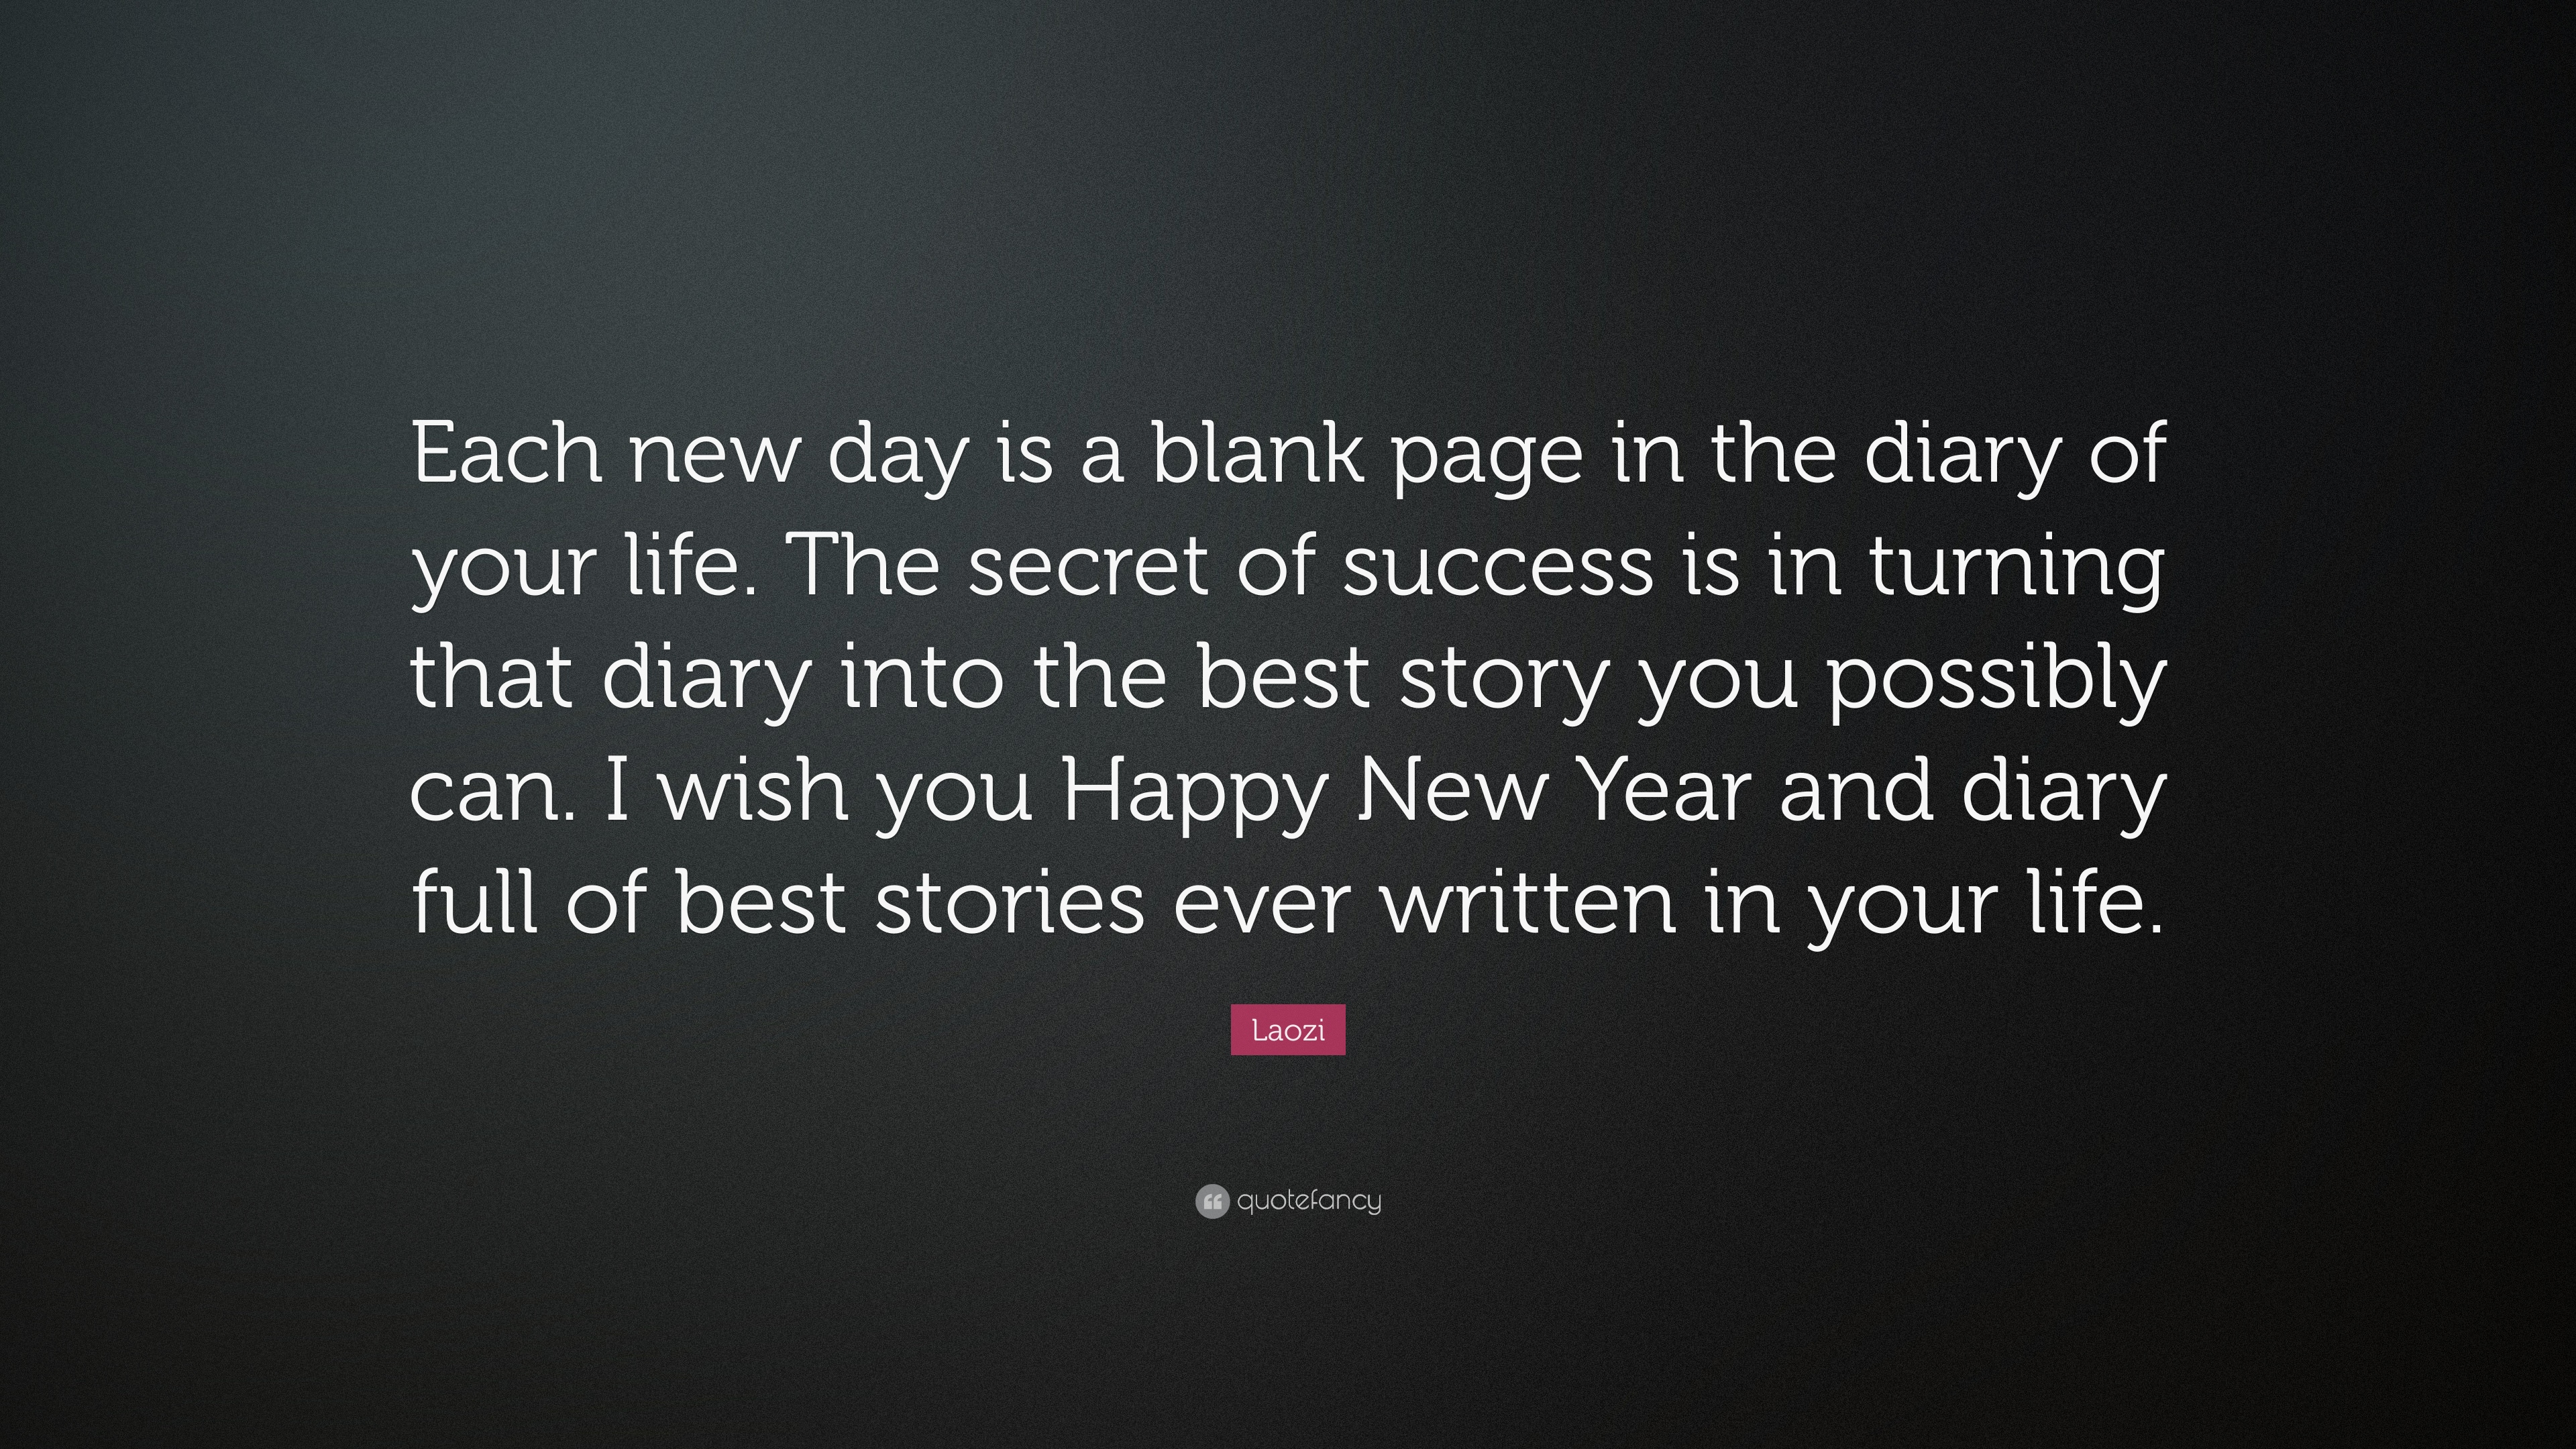 new year quotes each new day is a blank page in the diary of